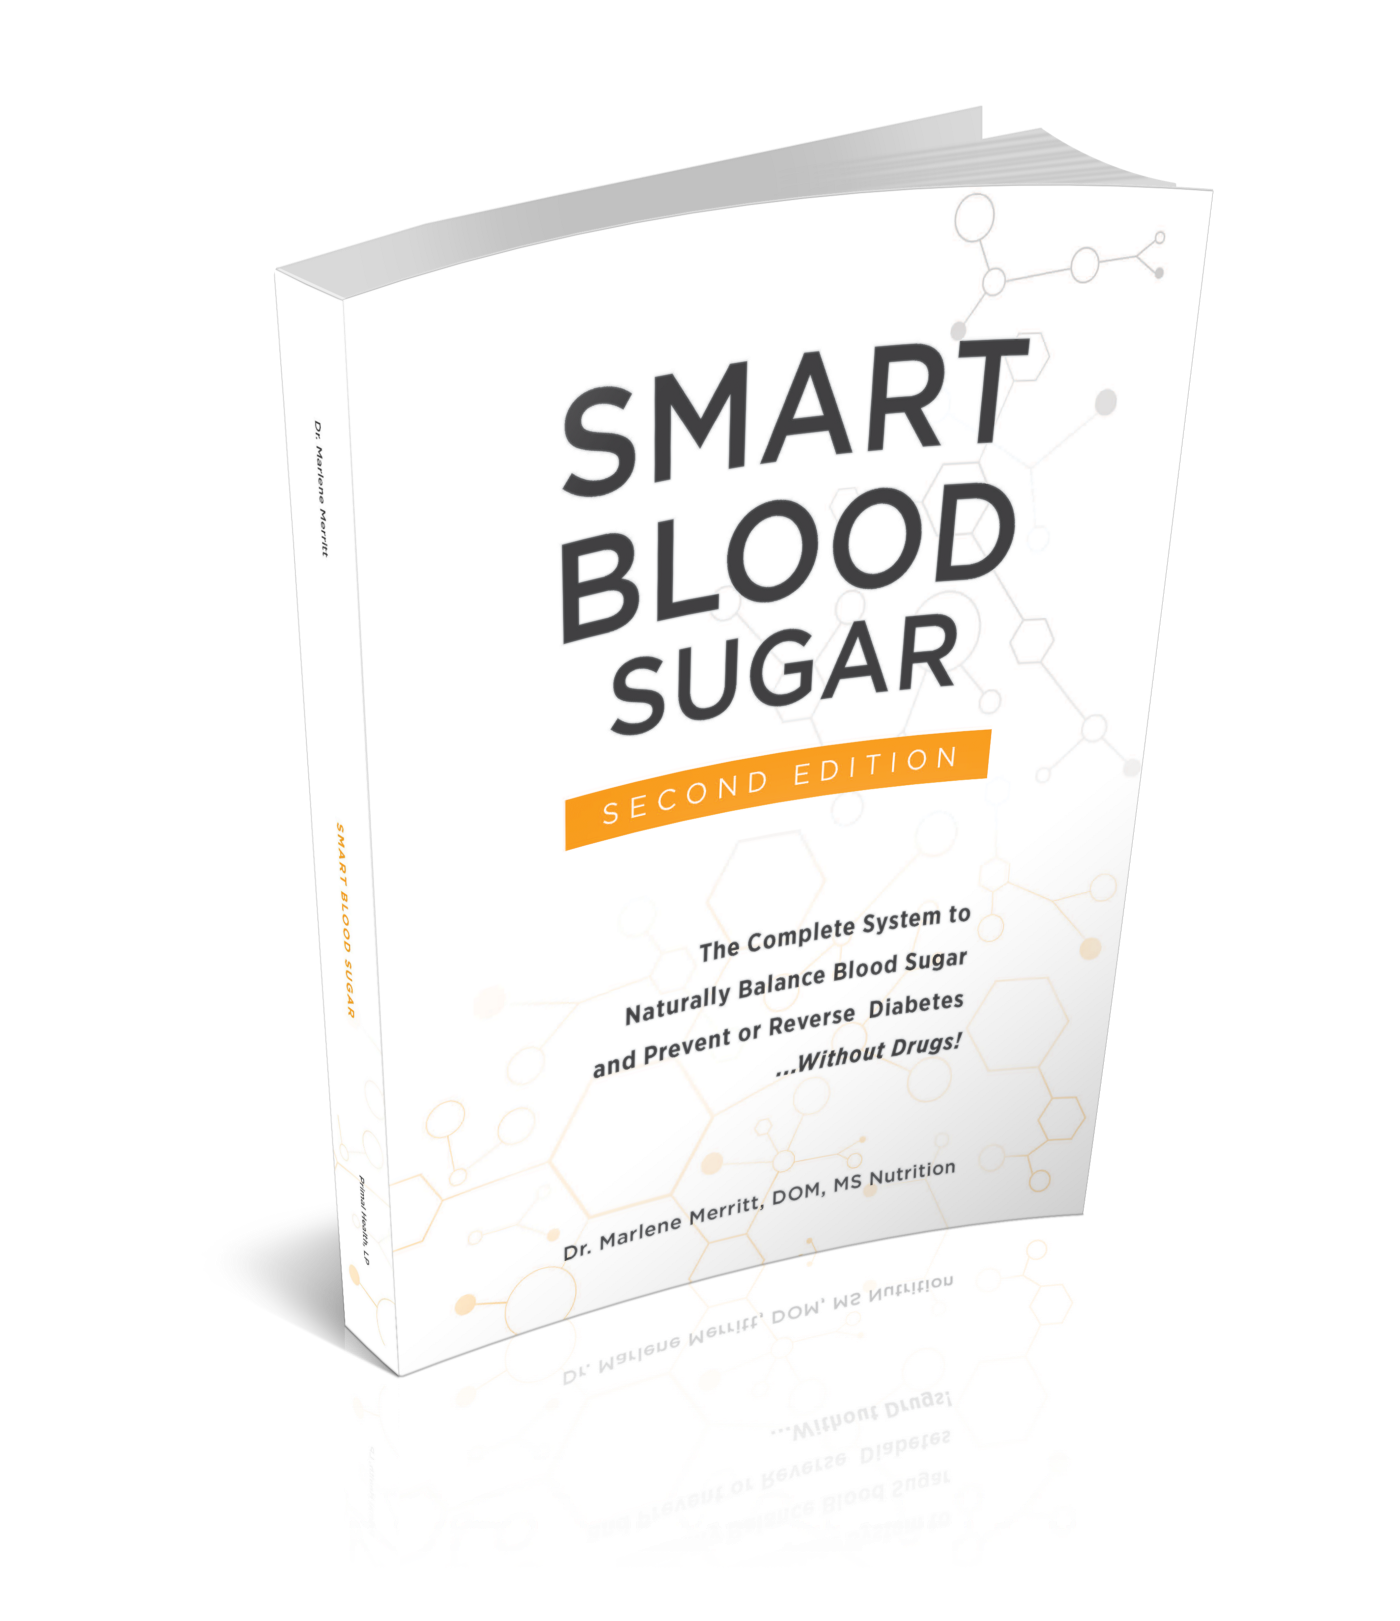 PDF) Smart Blood Sugar Review: Dr. Marlene Merritt | Medium